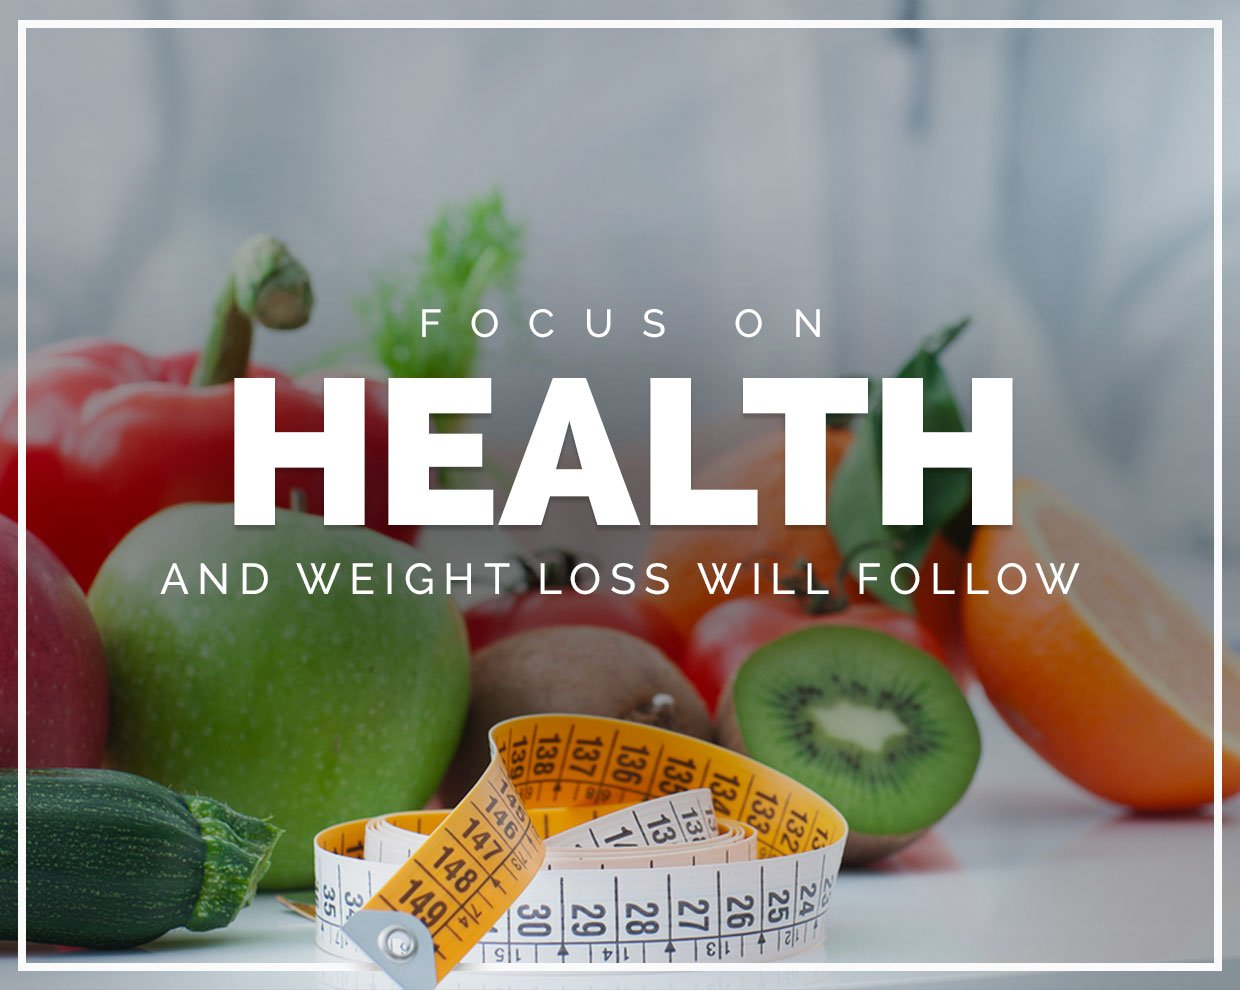 Focus on Health and the Weight Loss Will Follow